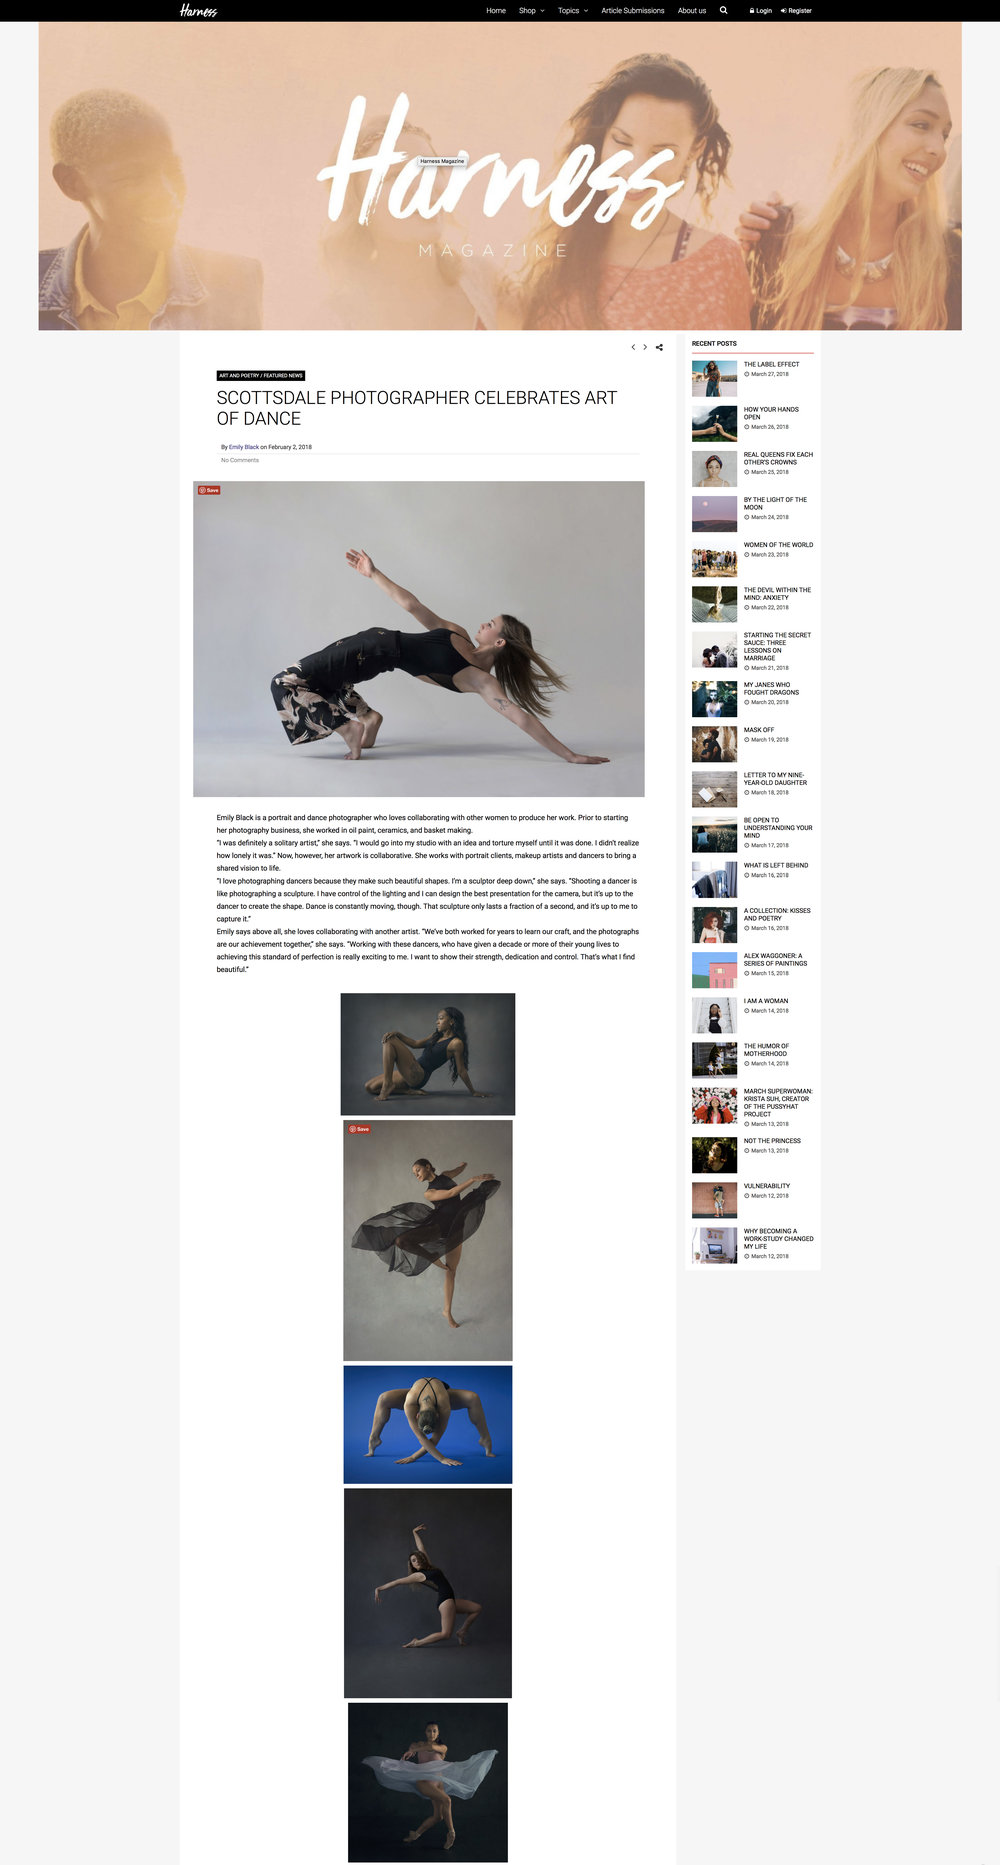 Harness Magazine featured my work on February 2.  Showcased dancers are Brittany Mayberry, Laina Carney, Meredith Matsen, Genevieve Schweitzer, Miquella Young, and Maddie Medina.  To read the article and support their mission giving voice to women and showcasing the arts, visit  H  arness Magazine.